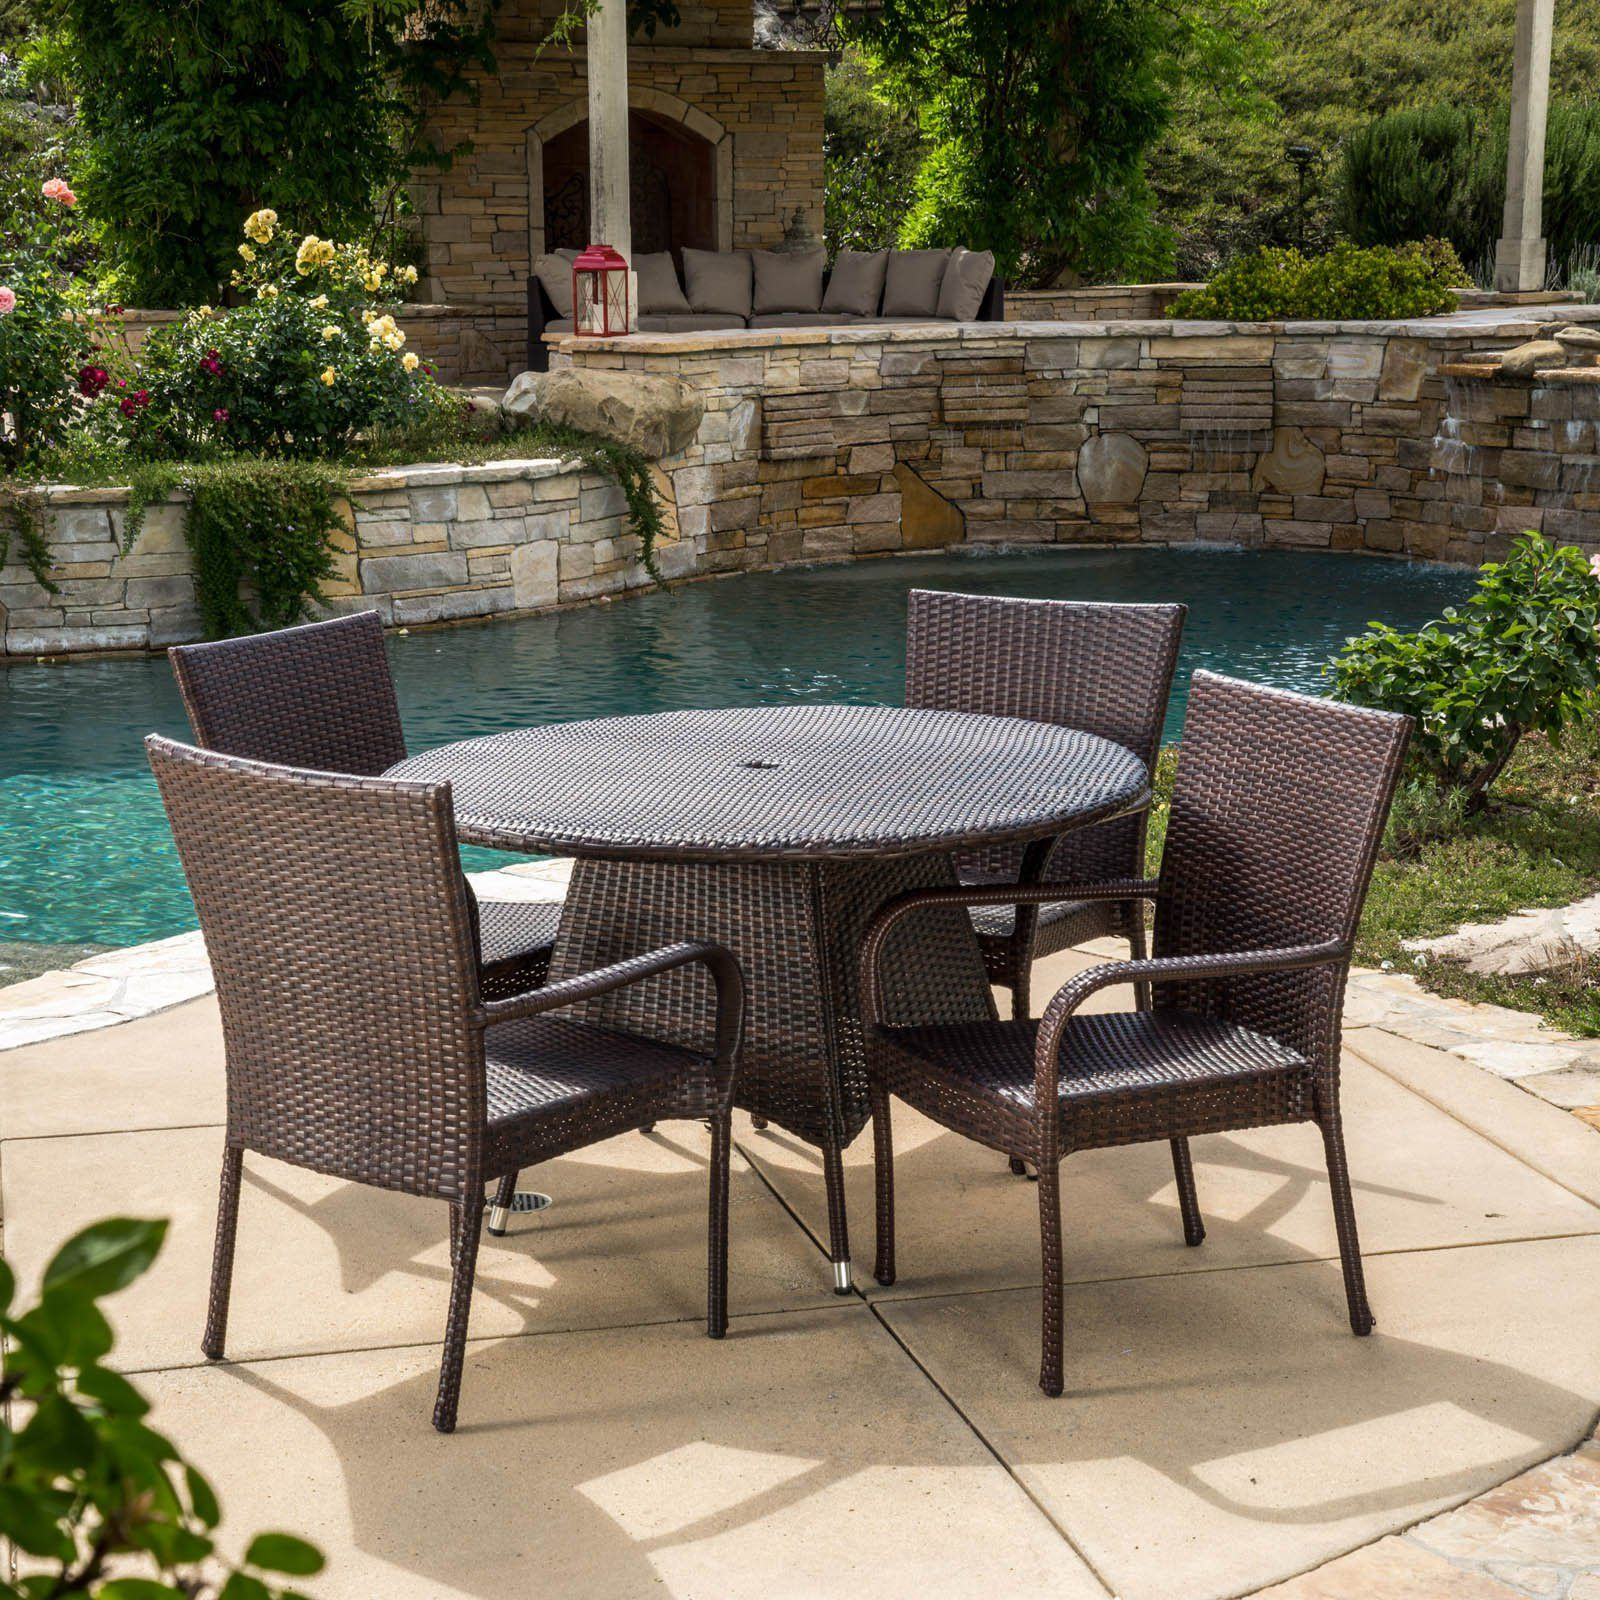 Outdoor Best Selling Home Decor Furniture Potter Wicker 5 Piece